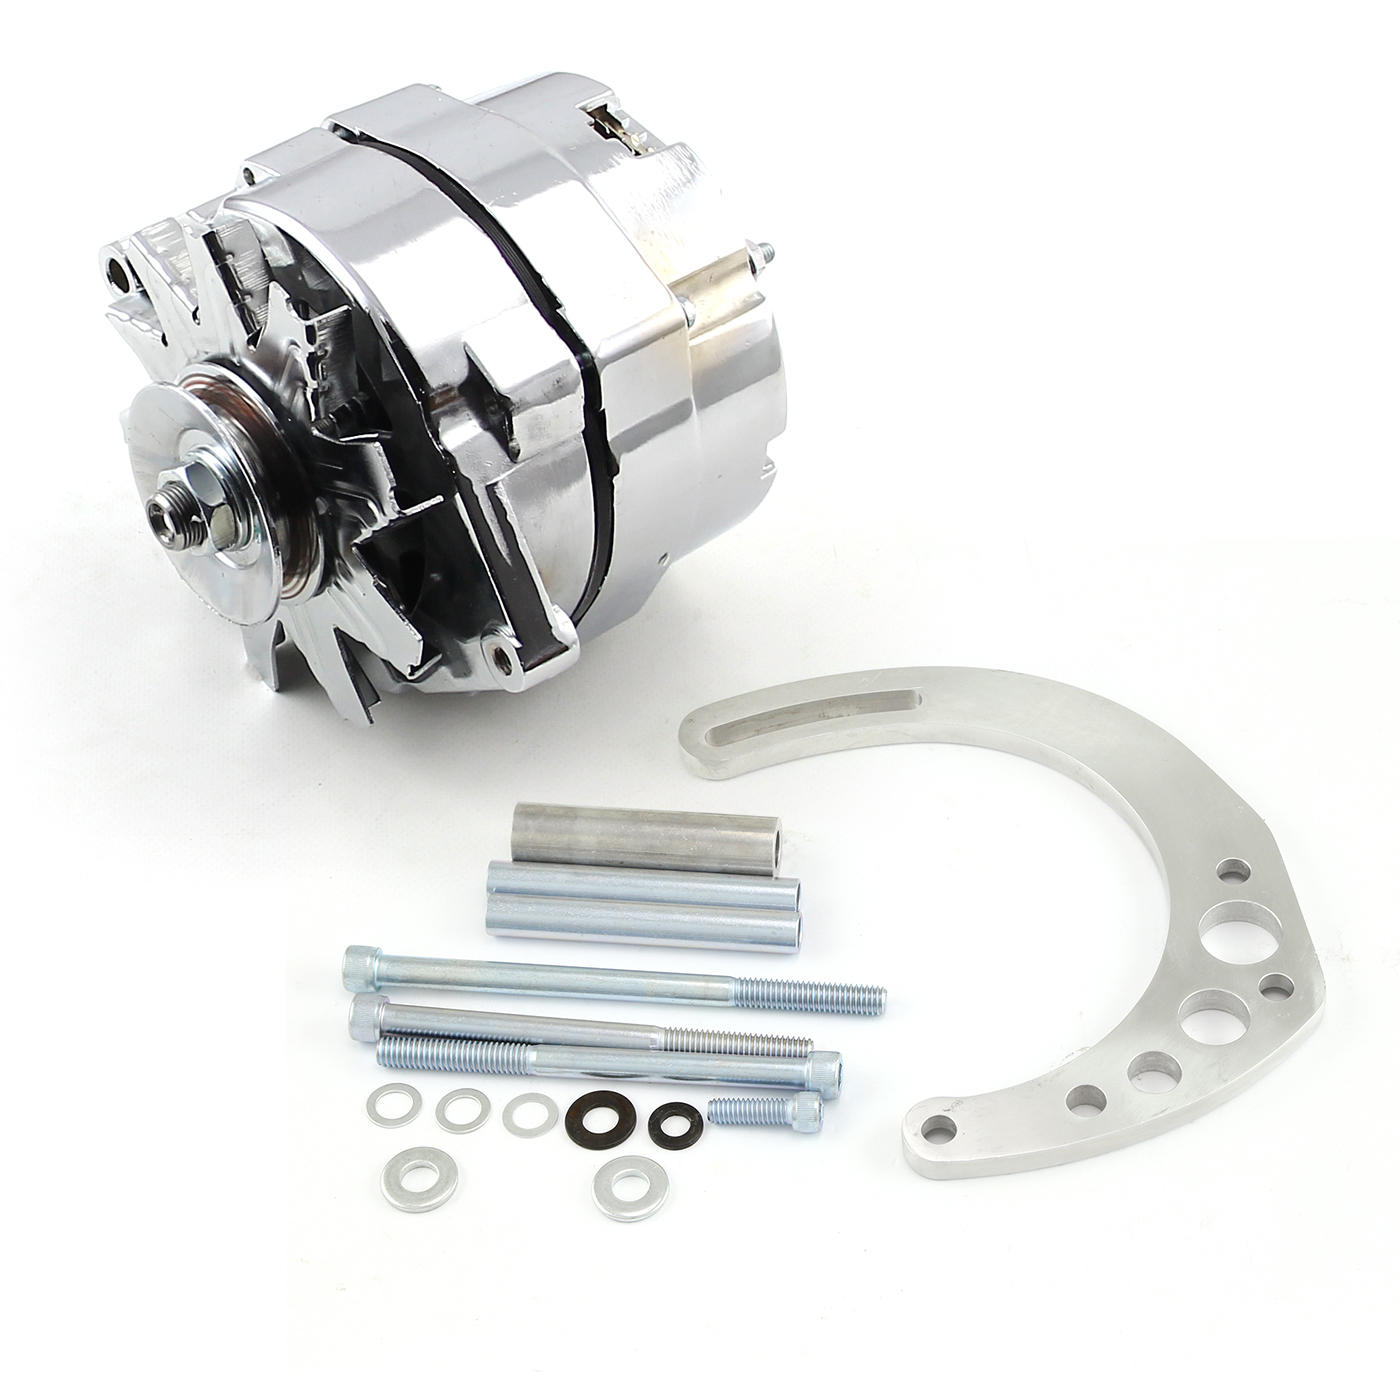 Chevy SBC 350 100 Amp 1 Wire Alternator & Low Mount Electric Pump Bracket Kit